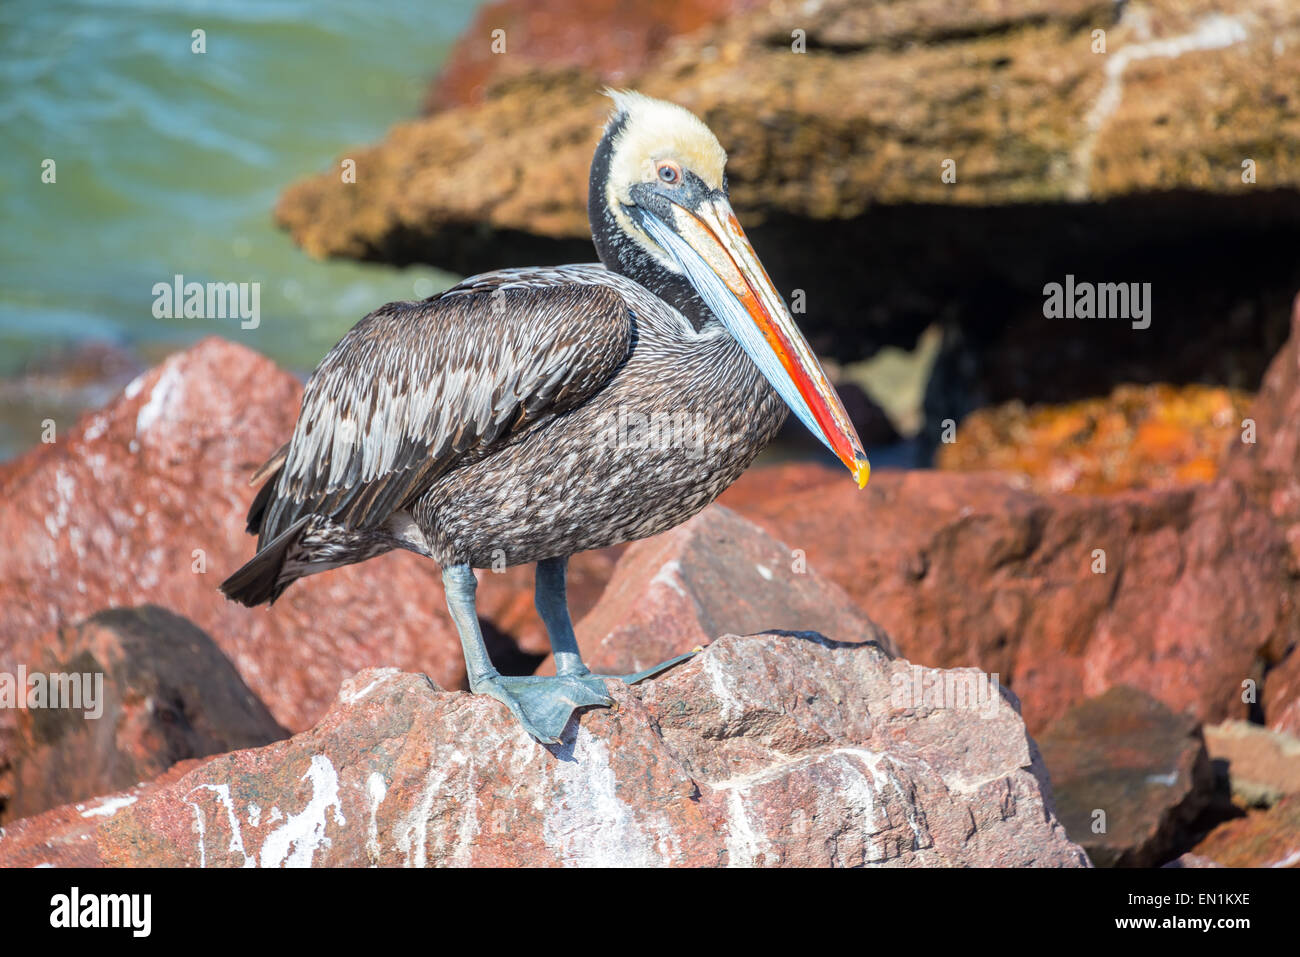 Brown pelican standing on colorful rocks in Paracas, Peru - Stock Image